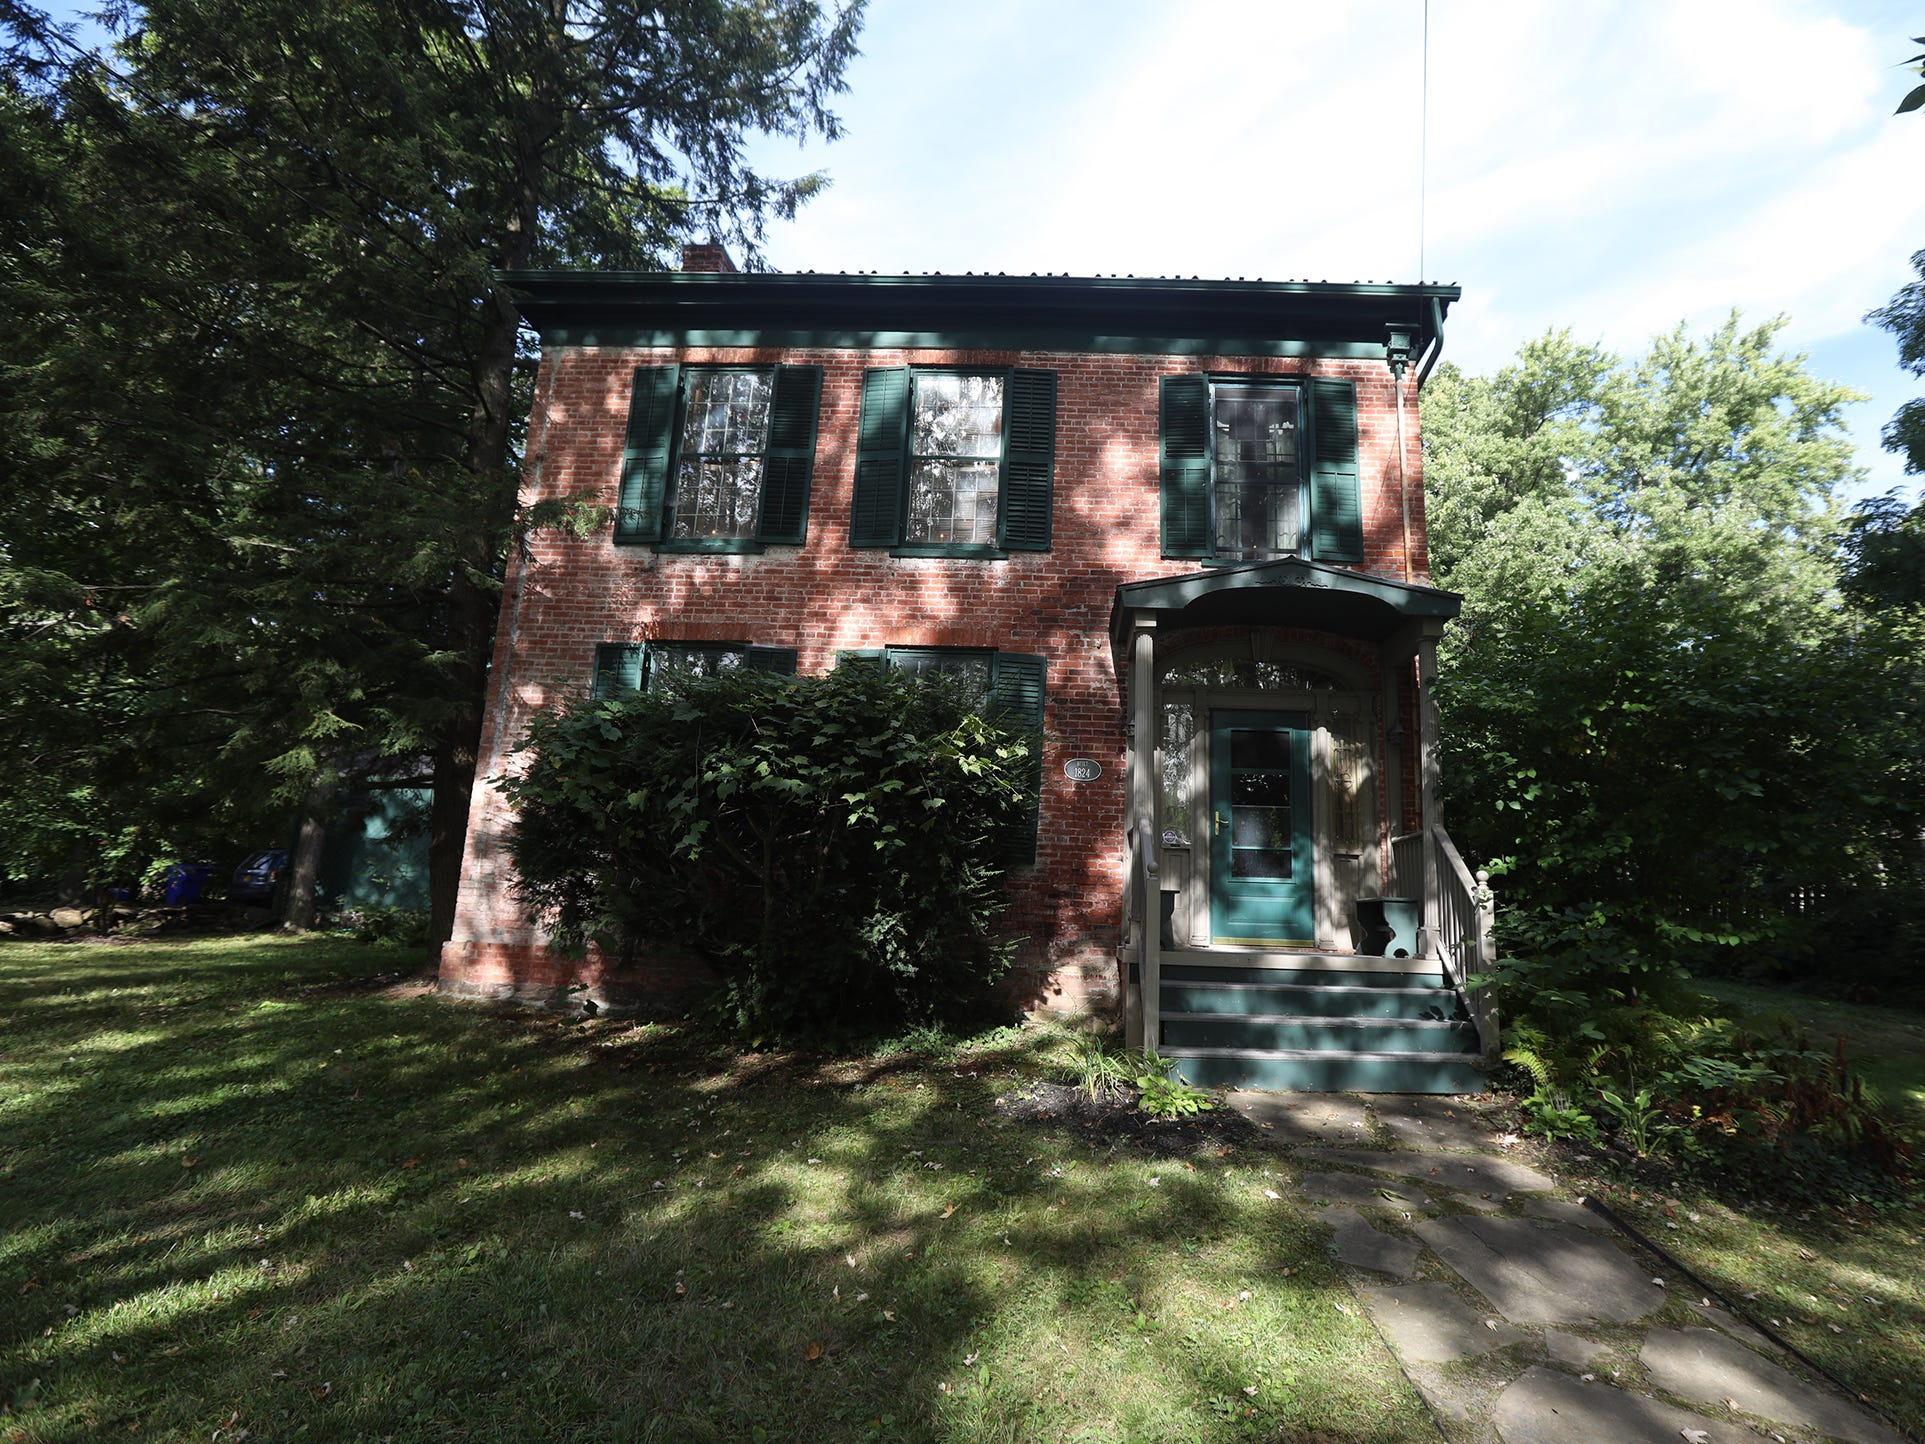 The house was built in 1824.